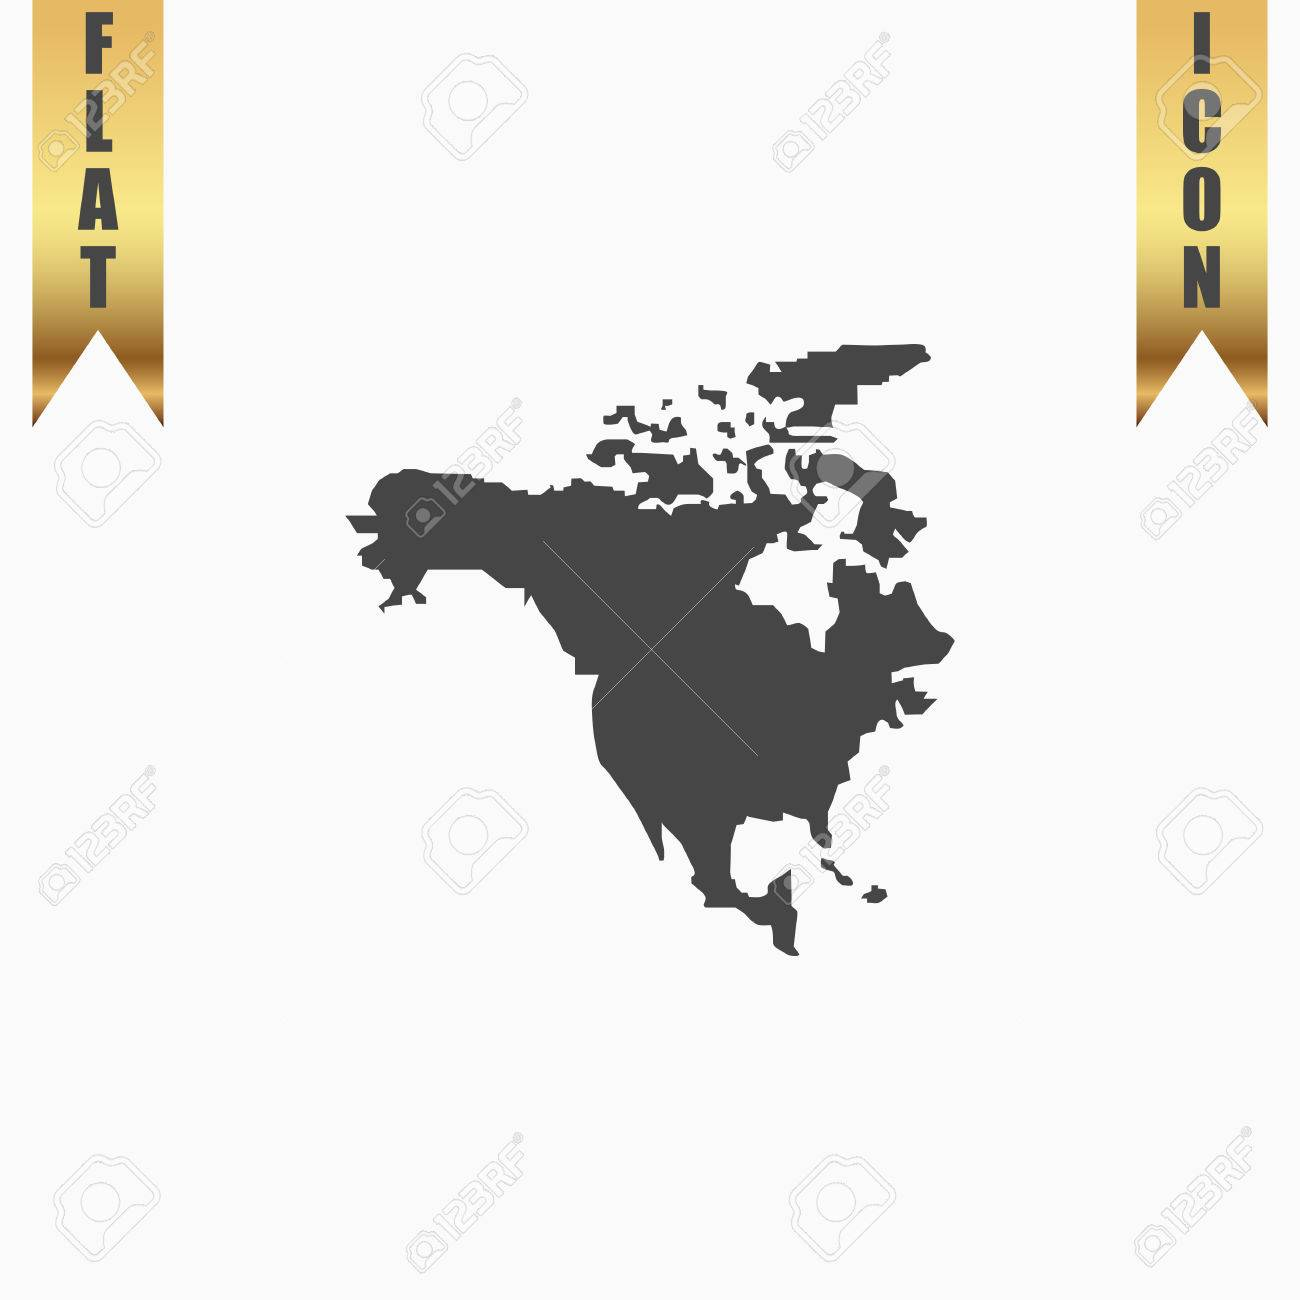 North america map flat icon vector illustration grey symbol north america map flat icon vector illustration grey symbol on white background with gold gumiabroncs Image collections